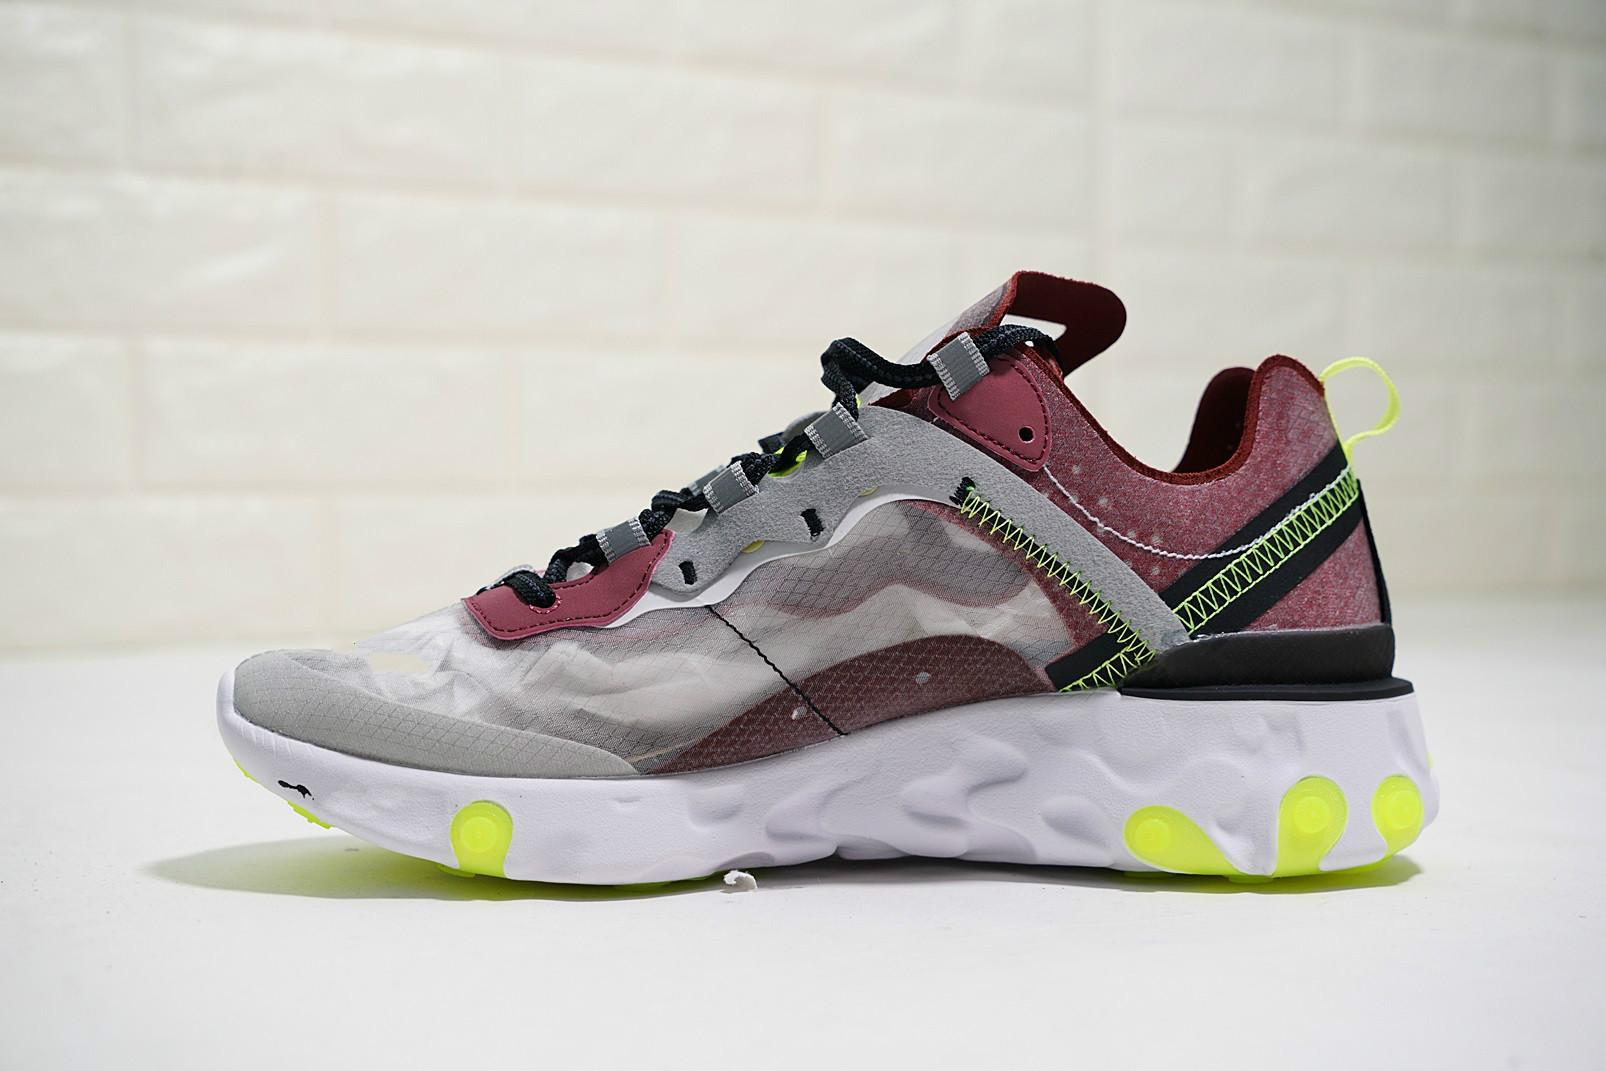 6a8fcb7140d79 2019 Hot Sale Upcoming React Element 87 UNDERCOVER Mens Designer ...